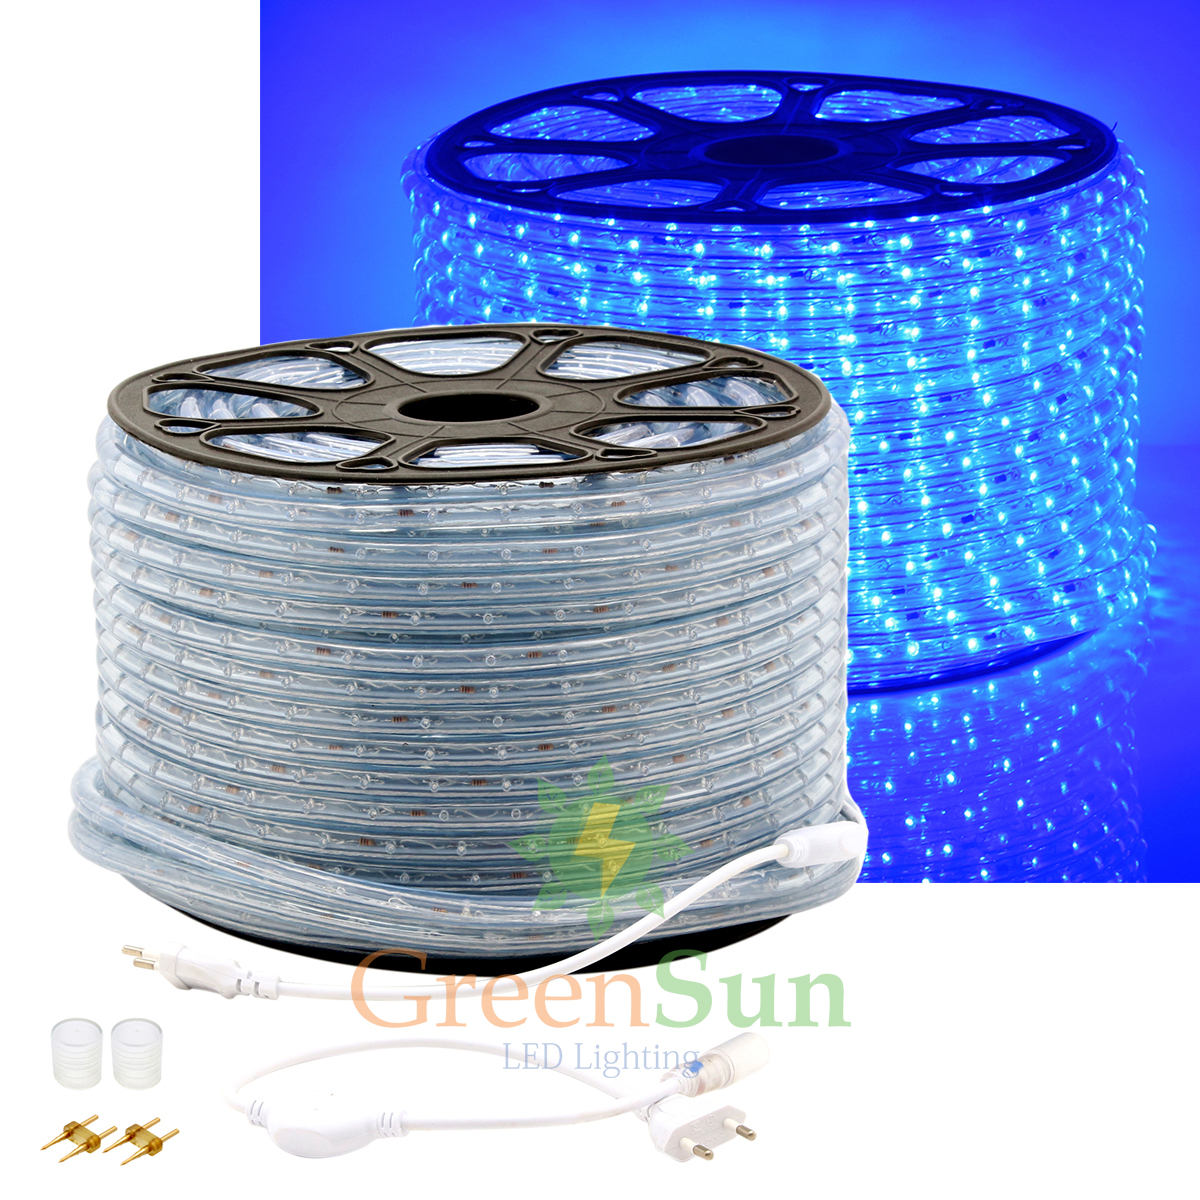 ФОТО Blue 20-50M M36 leds/m 2-Wire LED Strip Rope Light Home Garden Xmas Lamp 220V Waterproof IP68 LED Strip Light With Power line